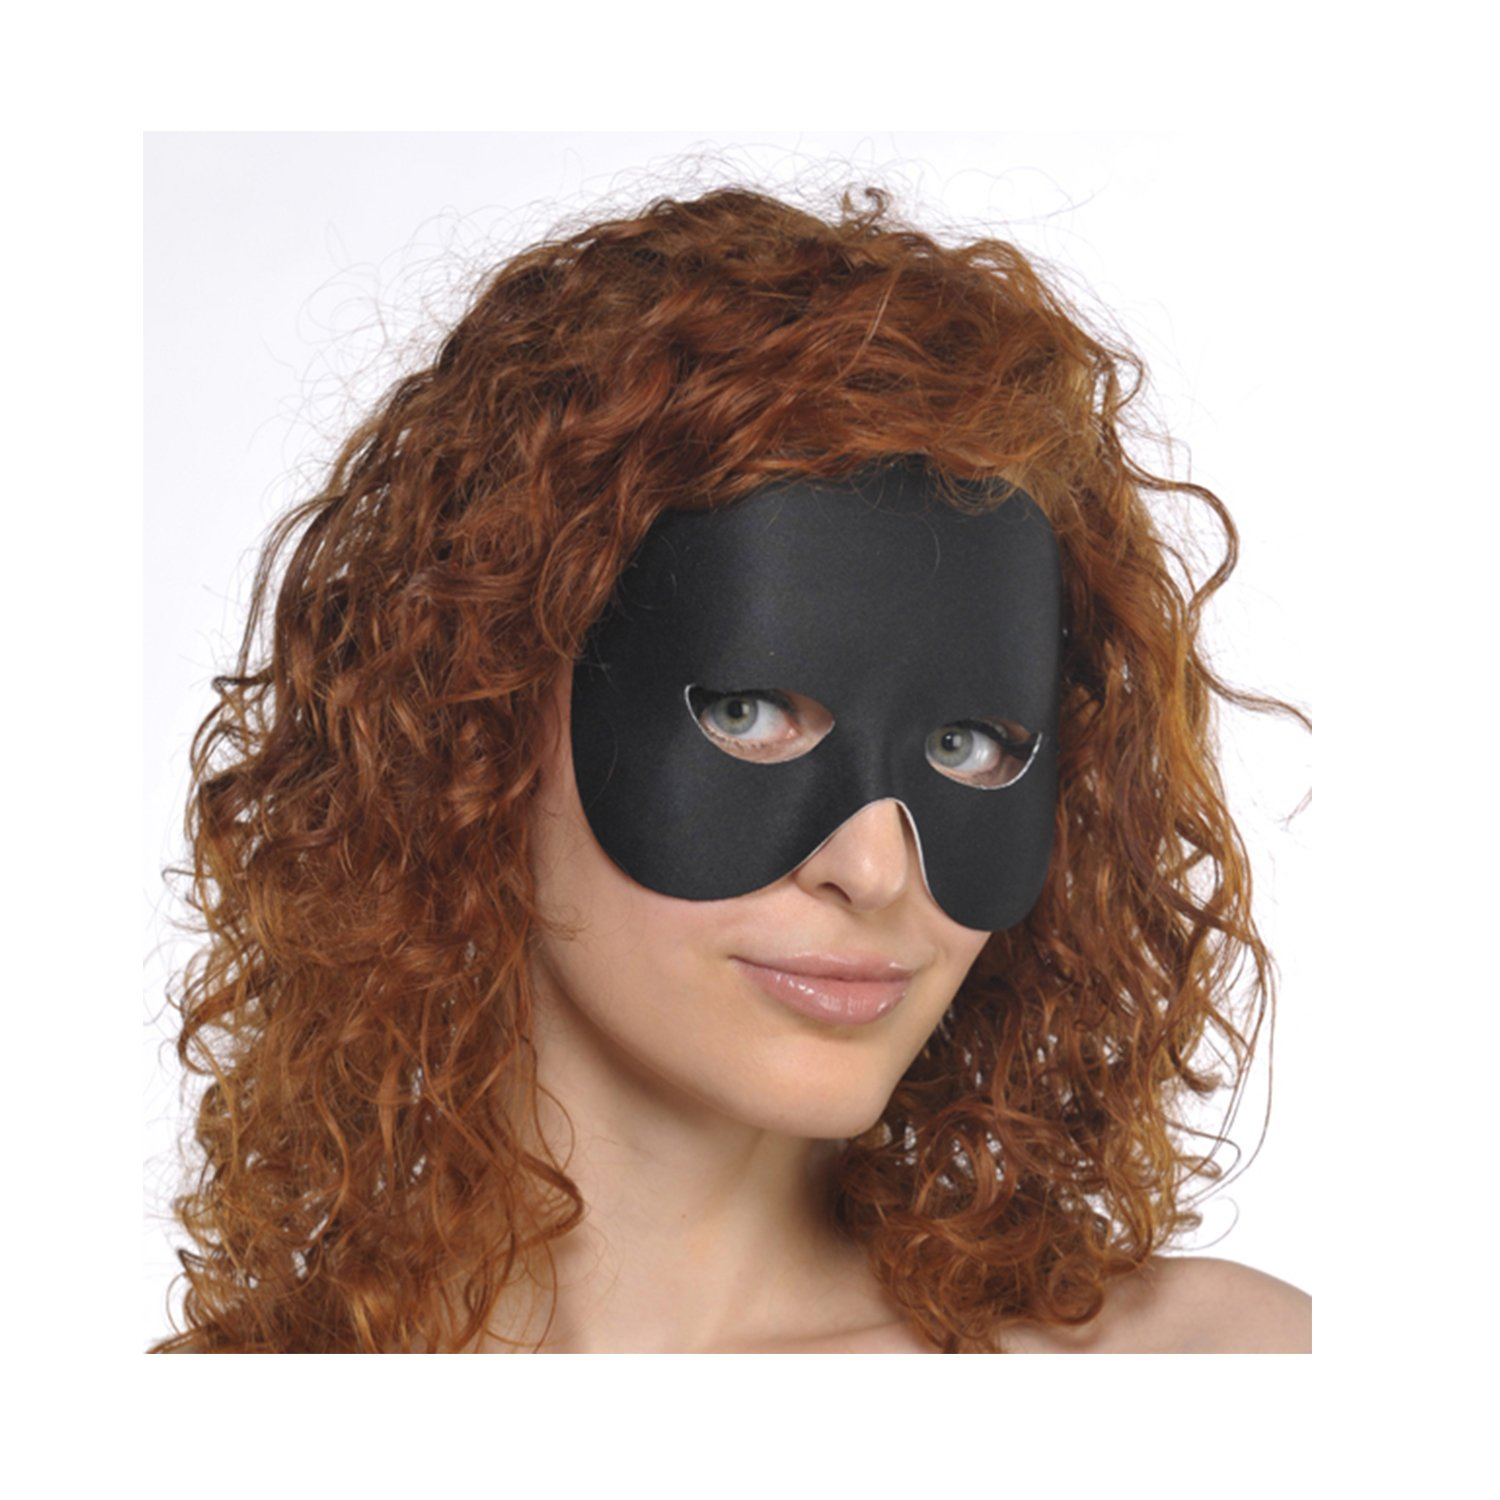 Gala Mask Party Supplies 12 Ct.